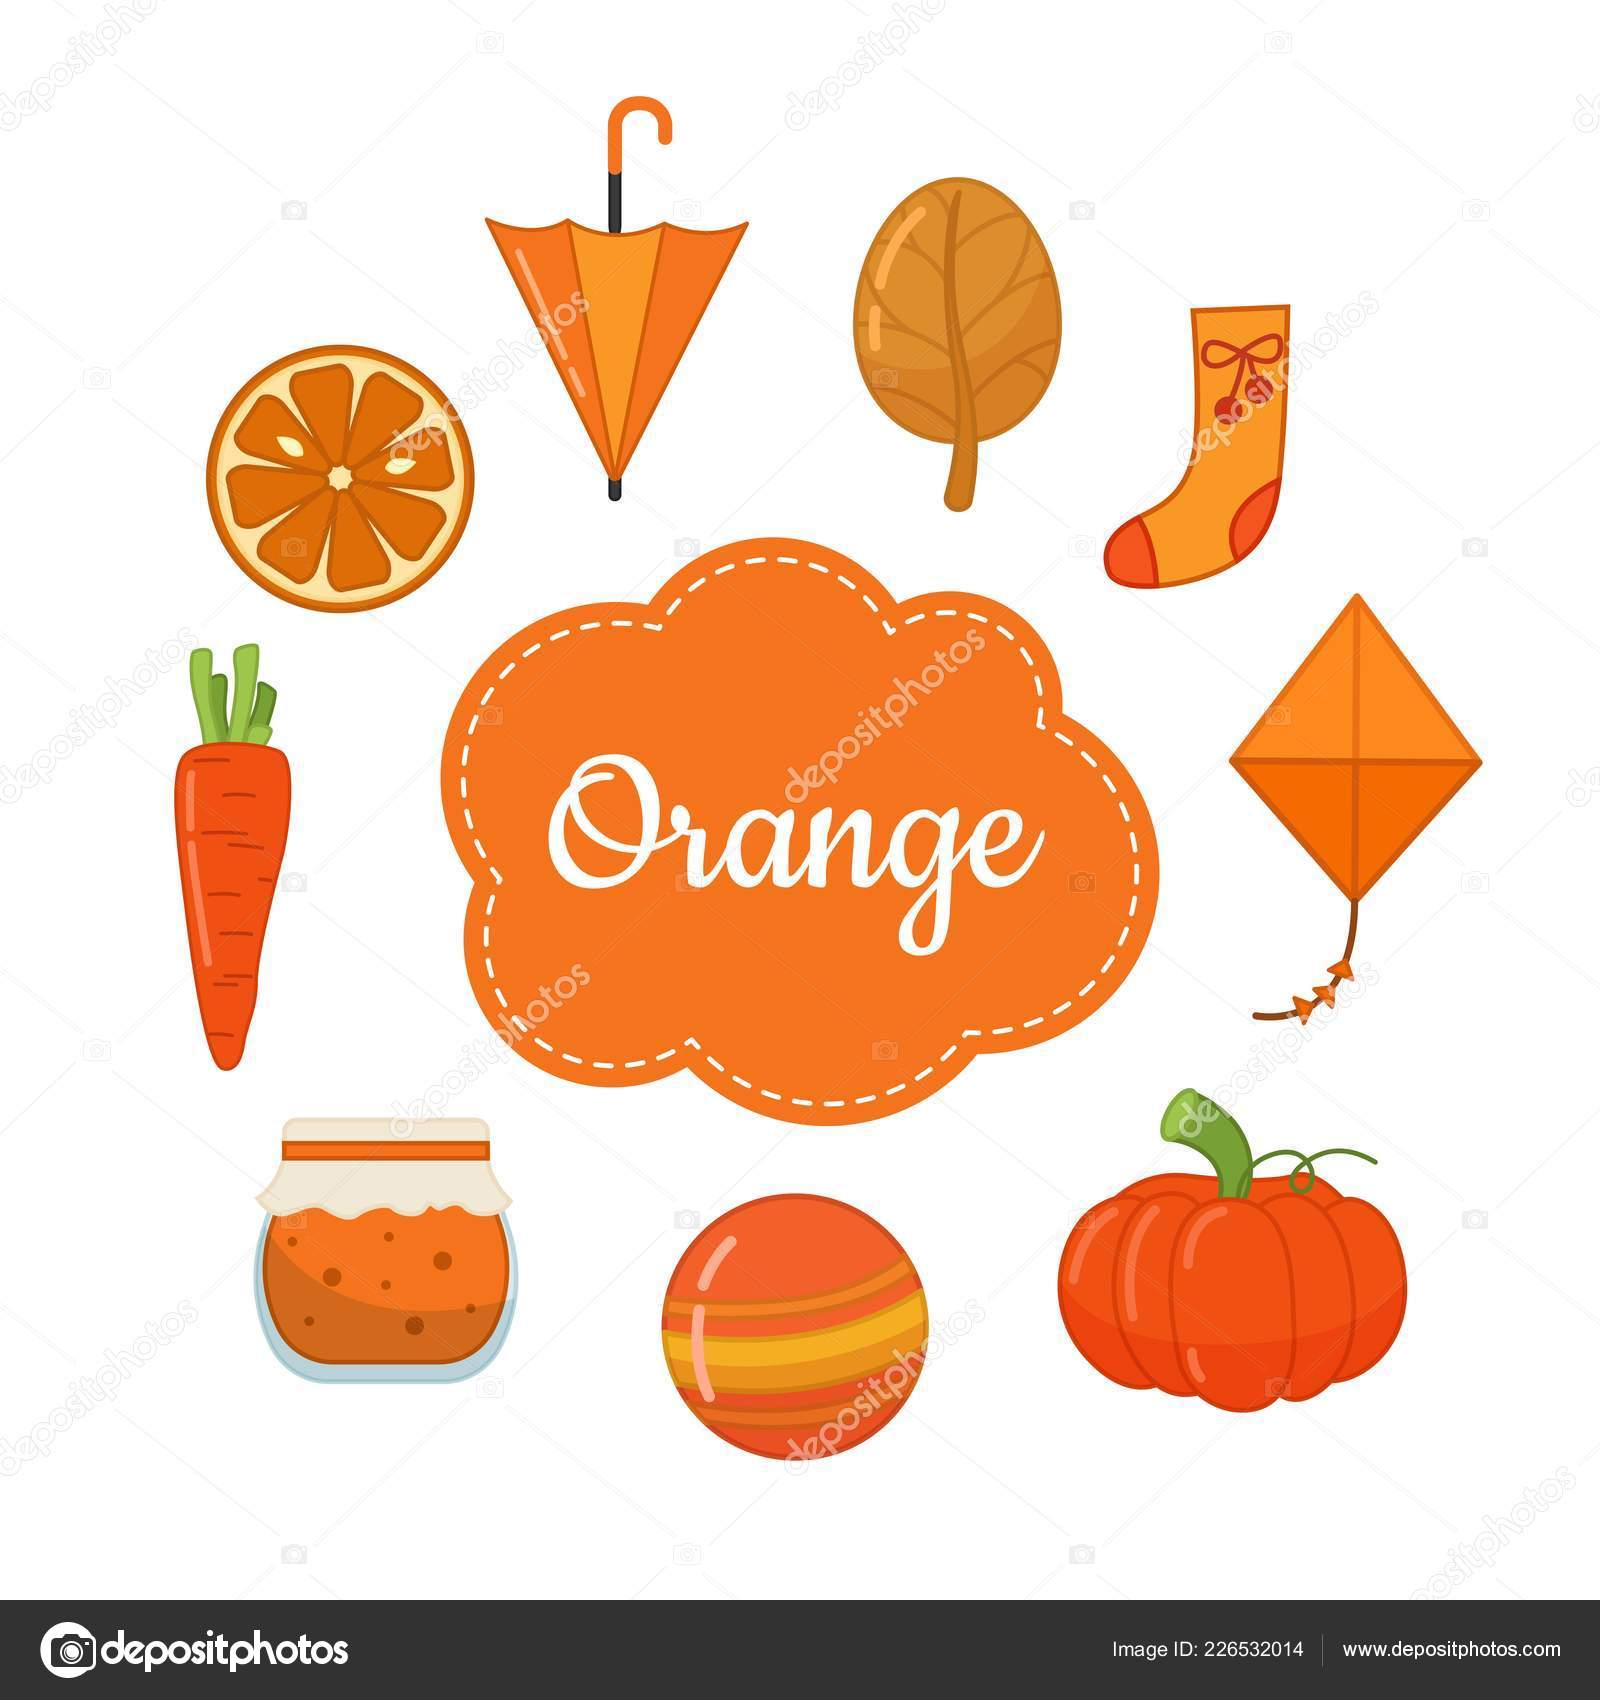 Learn Primary Colors Orange Different Objects Orange Color